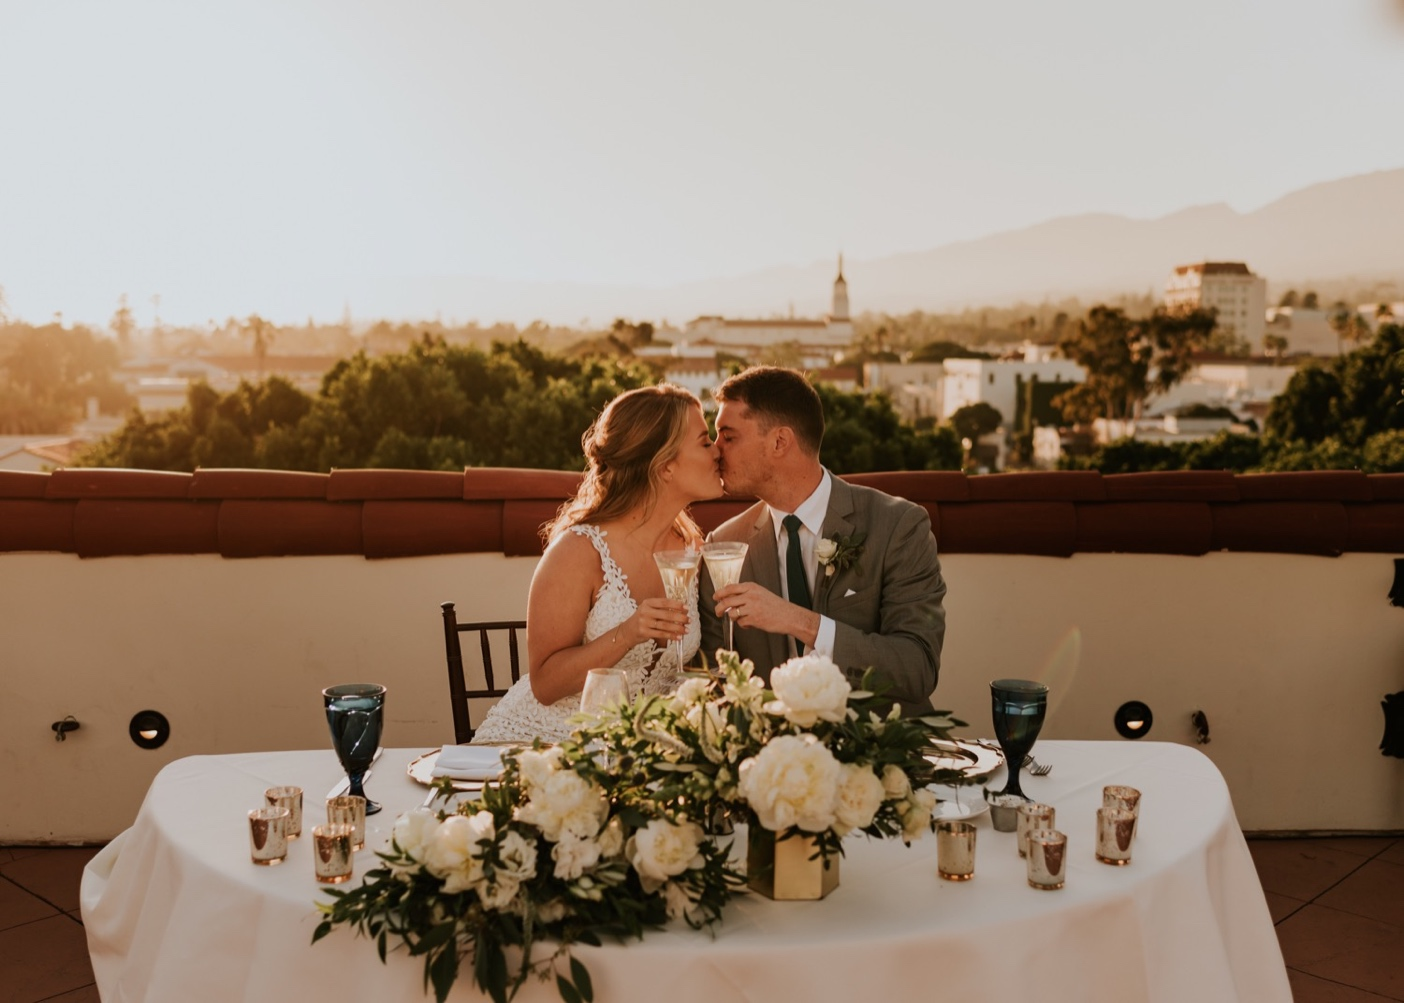 Sunset Rooftop wedding reception Canary Hotel Santa Barbara. Bride and Groom kissing at sweetheart table.